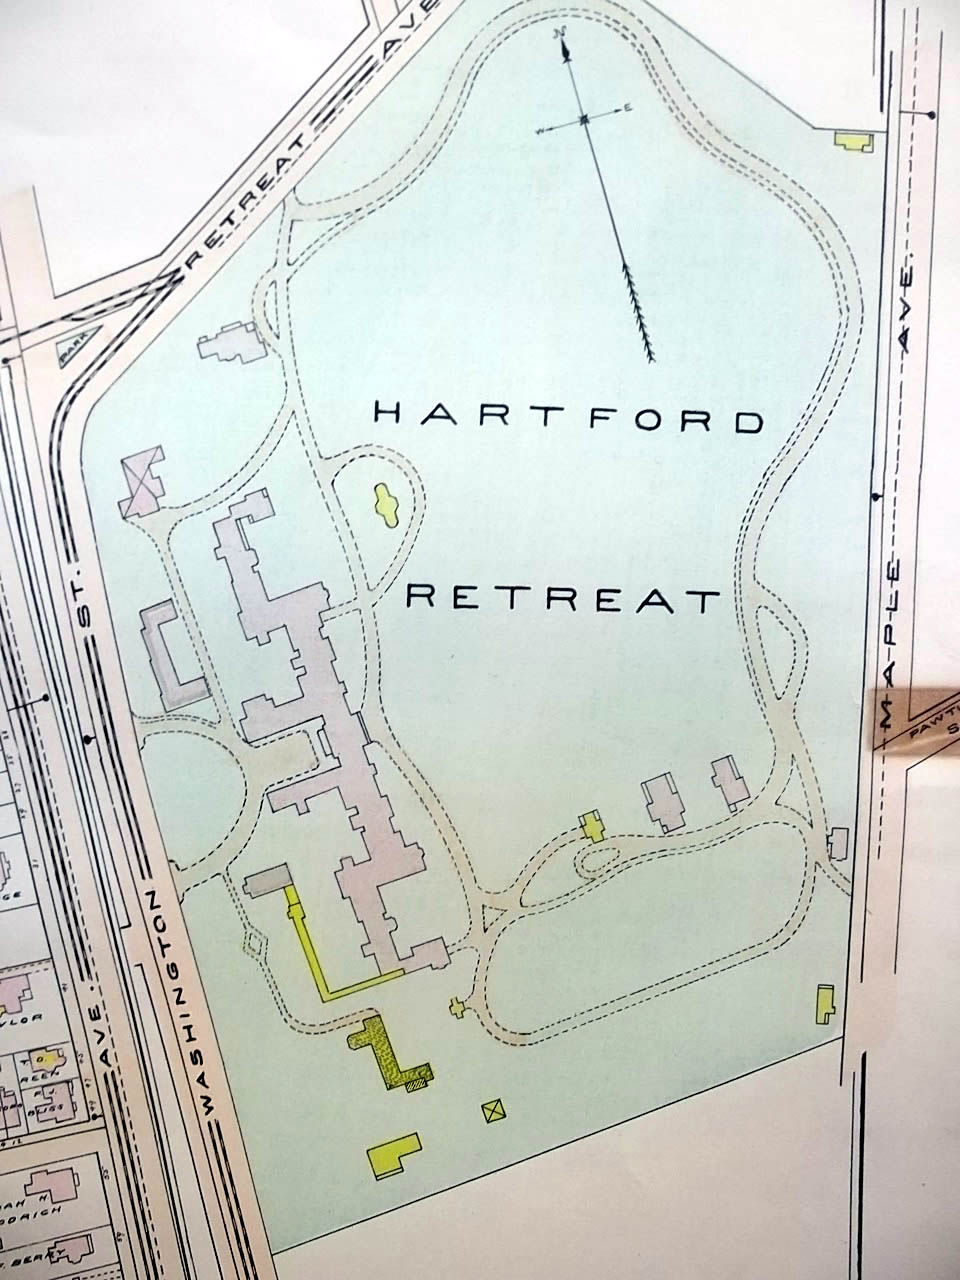 1909 Hartford CT Map: Retreat; Consolidated Railway; Hospital; Old People's Home